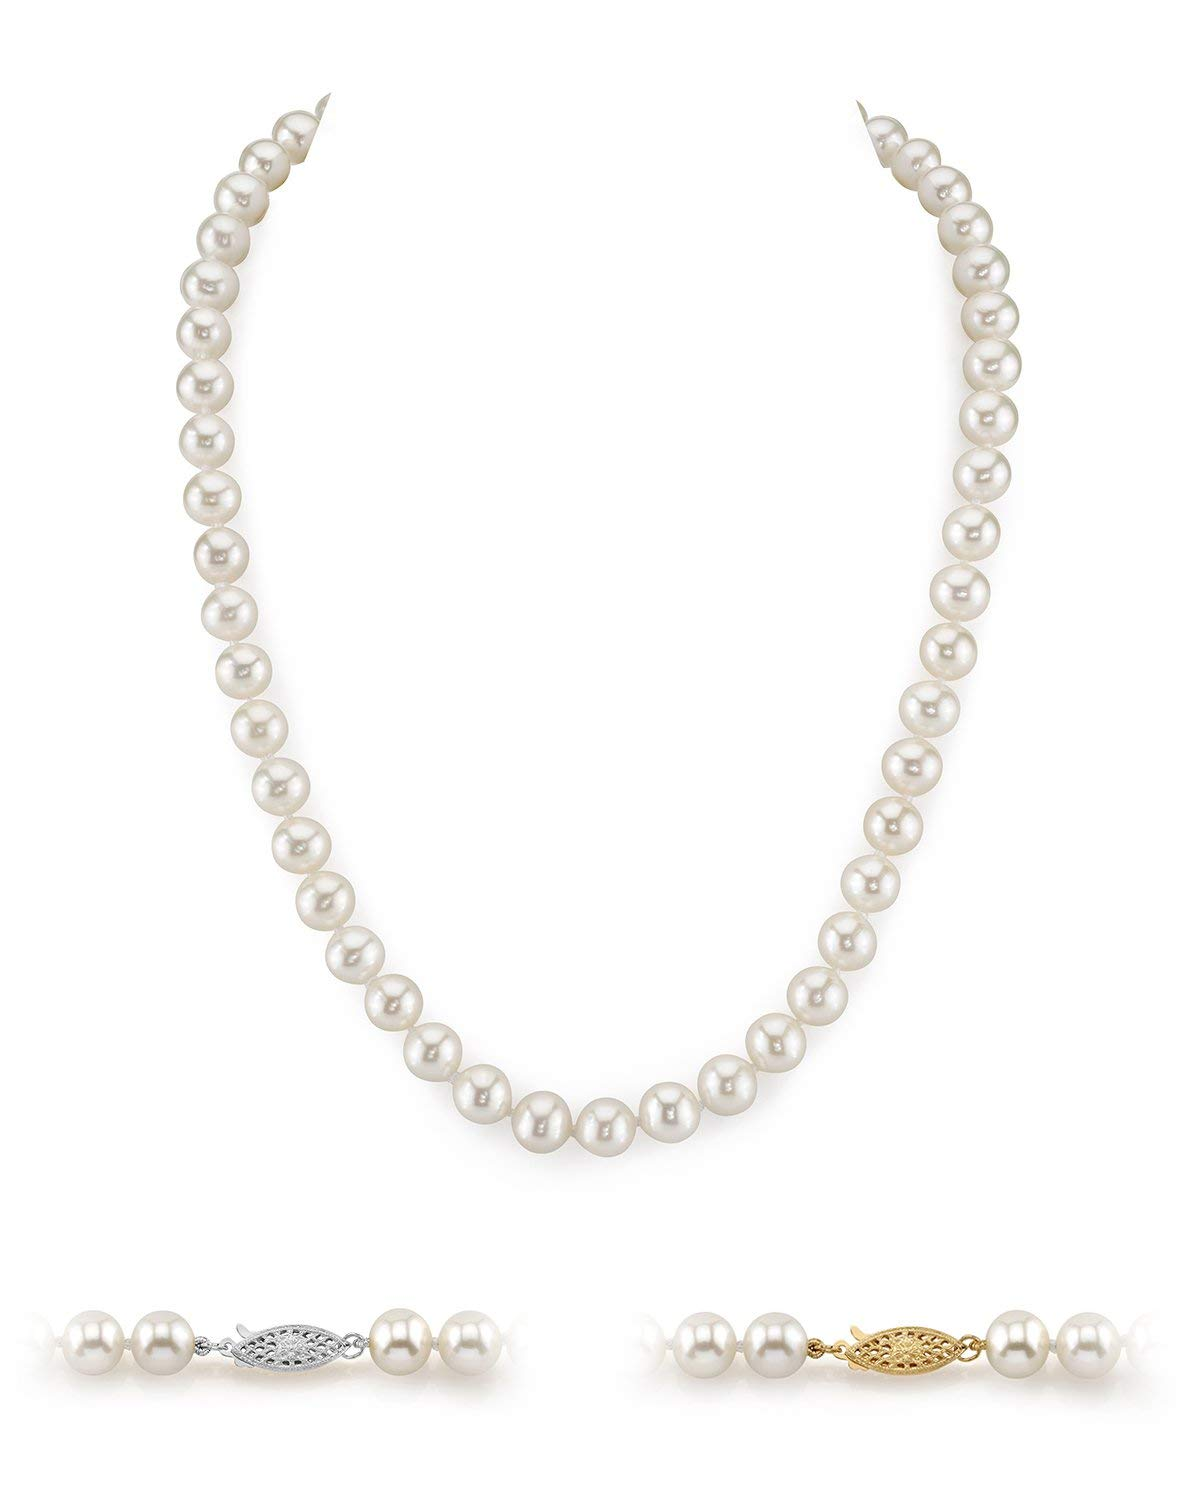 THE PEARL SOURCE 14K Gold 8-9mm AAA Quality White Freshwater Cultured Pearl Necklace for Women in 24'' Matinee Length by The Pearl Source